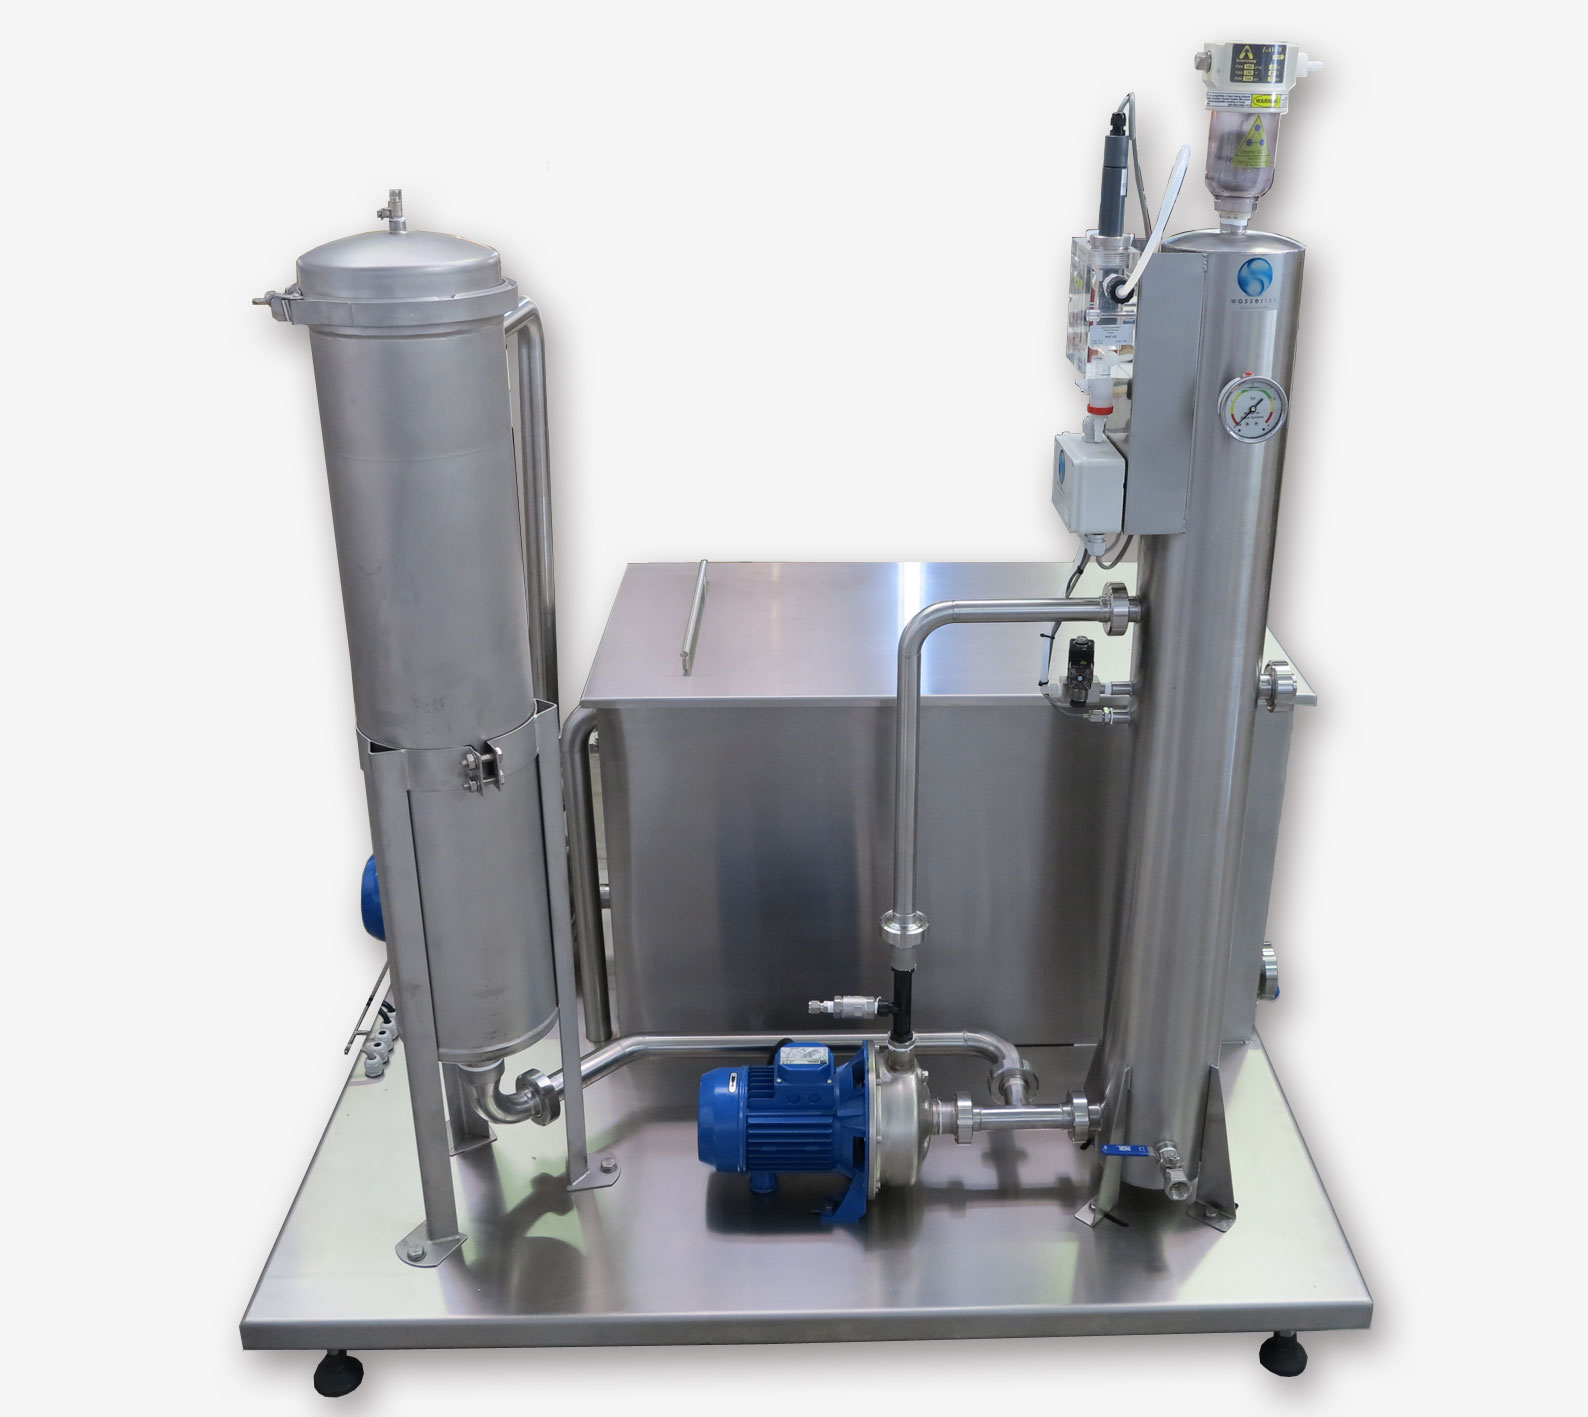 Water recycling. Wassertec. Bright Blue ozone system. Bottle disinfection, Bottle rinsing. Bright Blue 20G Ozone System Bottle rinsing systems. bottle rinsing , bottle rinsers, ozone bottle rinsing